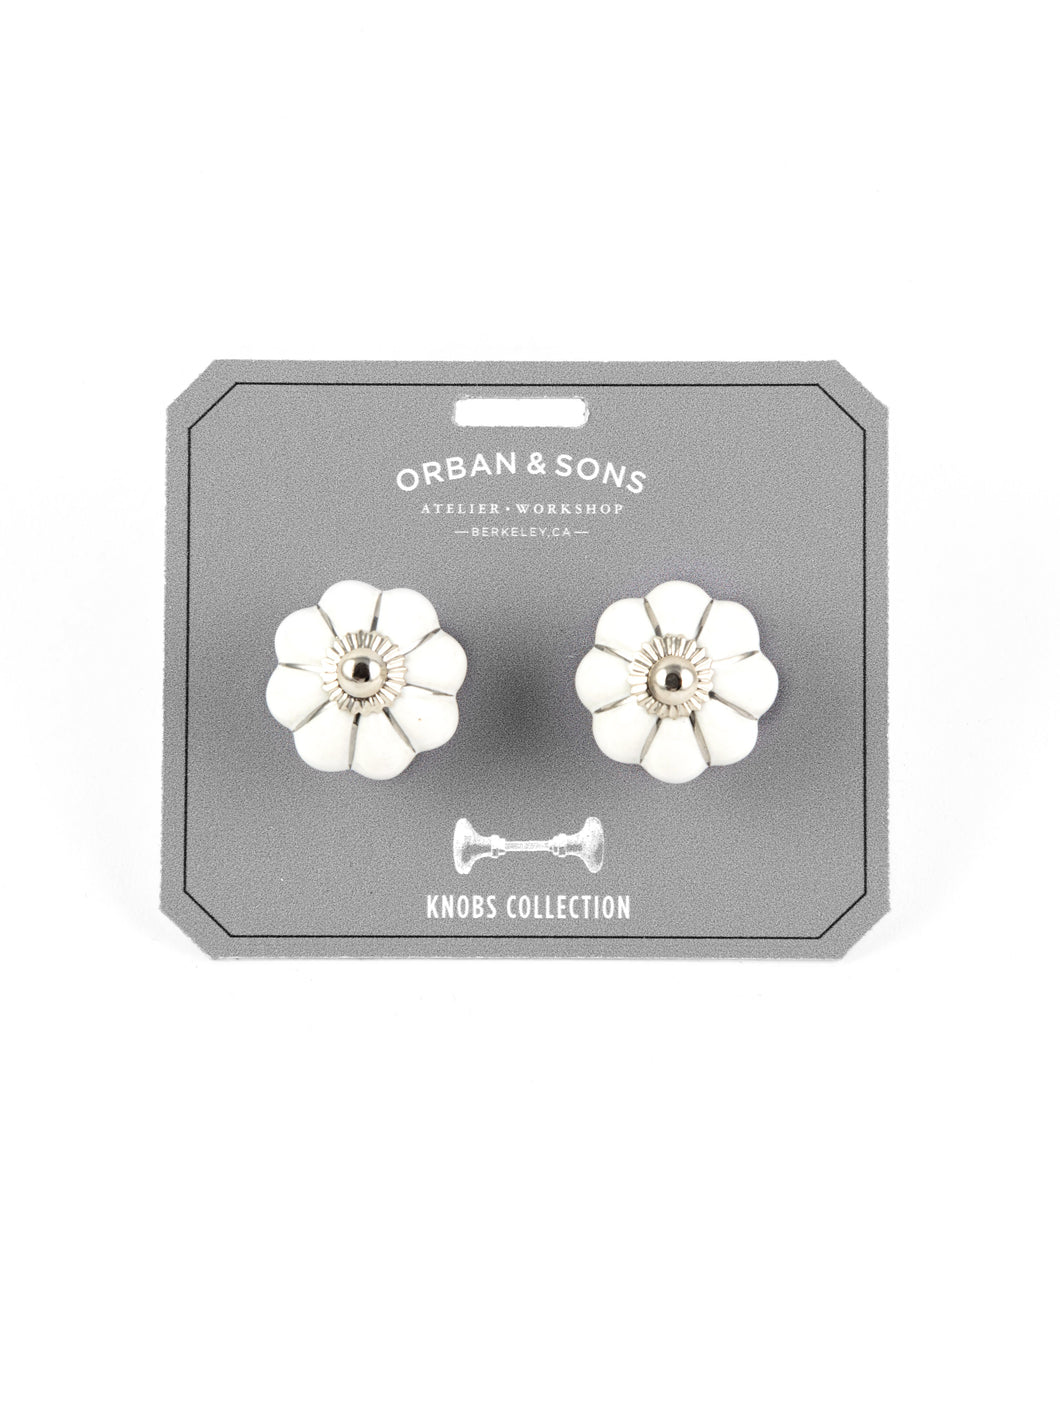 Orban & Sons White Flower Knobs (Set of 4)